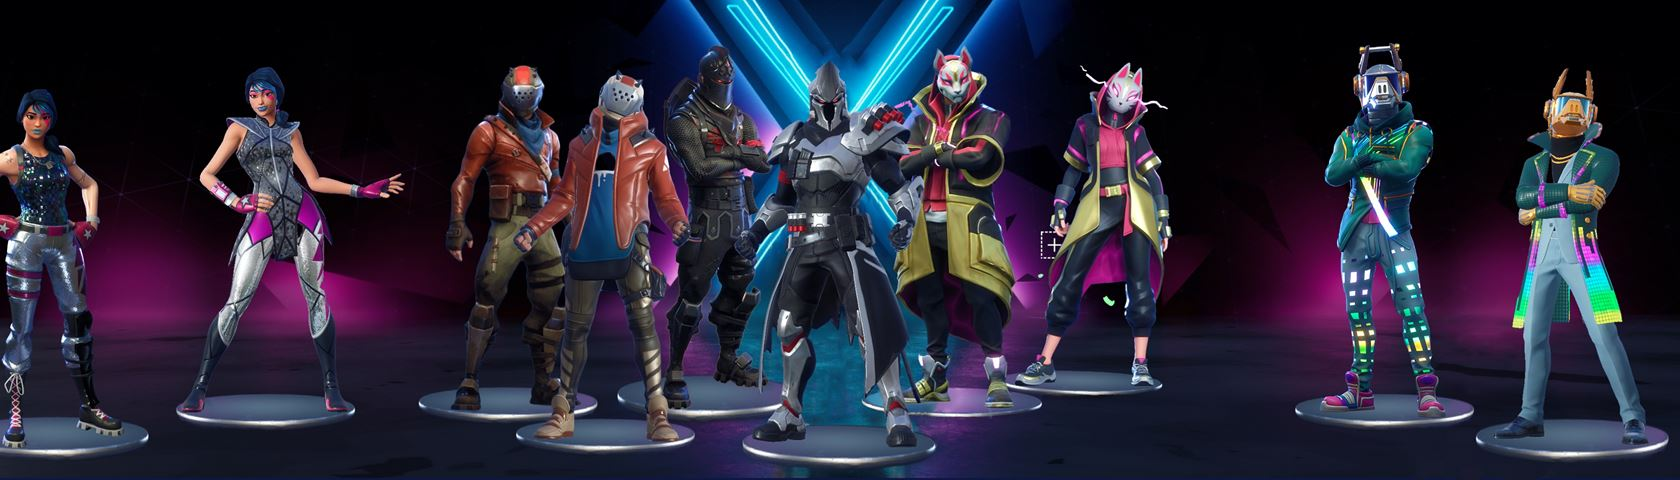 Fortnite Season 10 Old and New Skins